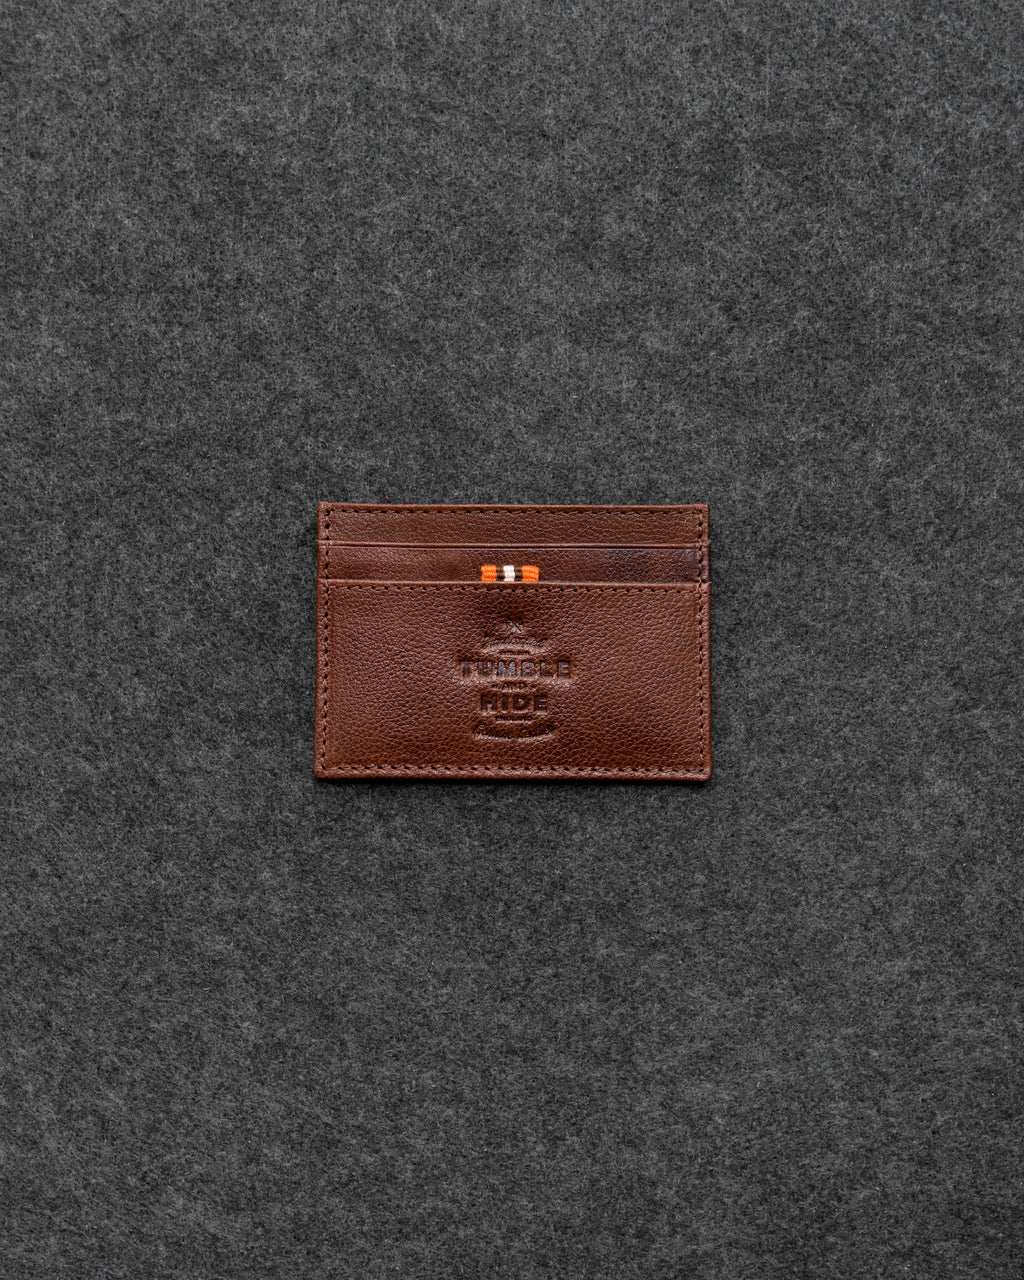 Tumble and Hide Apollo Leather Slim Credit Card Holder Wallet Brown a